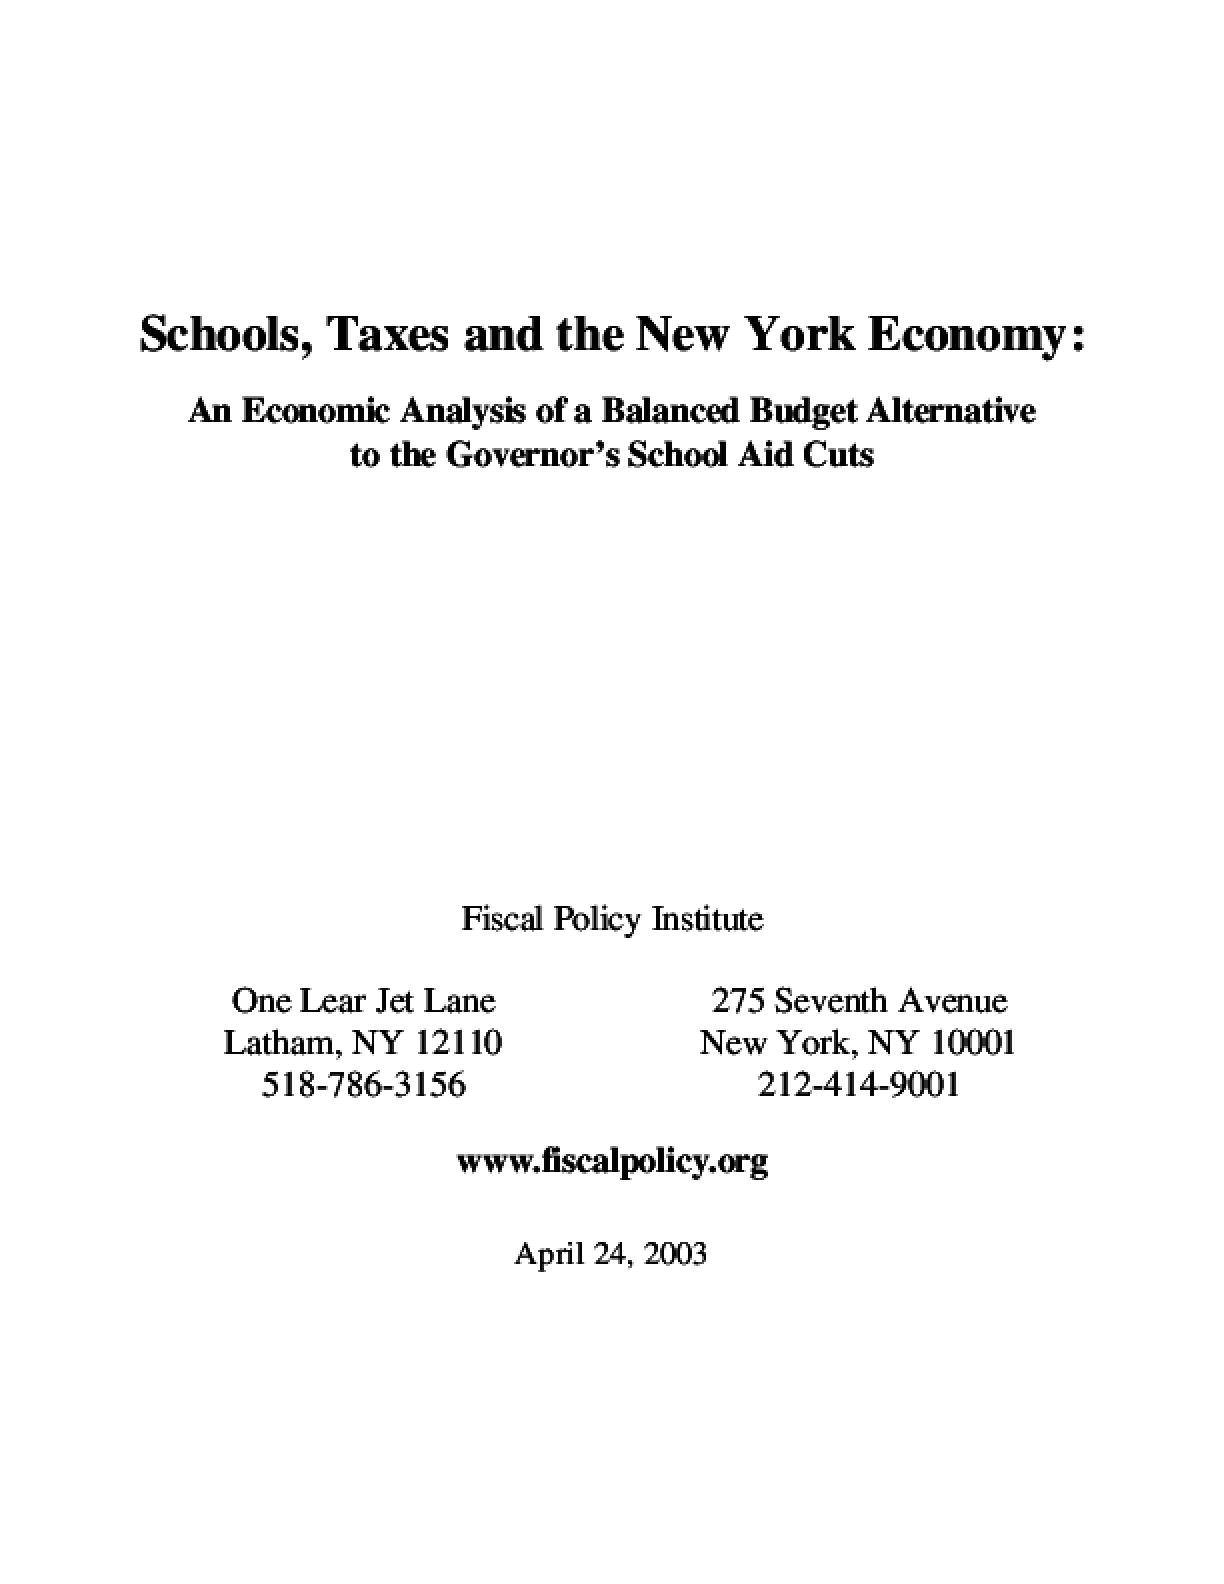 Schools, Taxes and the New York Economy: An Economic Analysis of a Balanced Budget Alternative to the Governor's School Aid Cuts